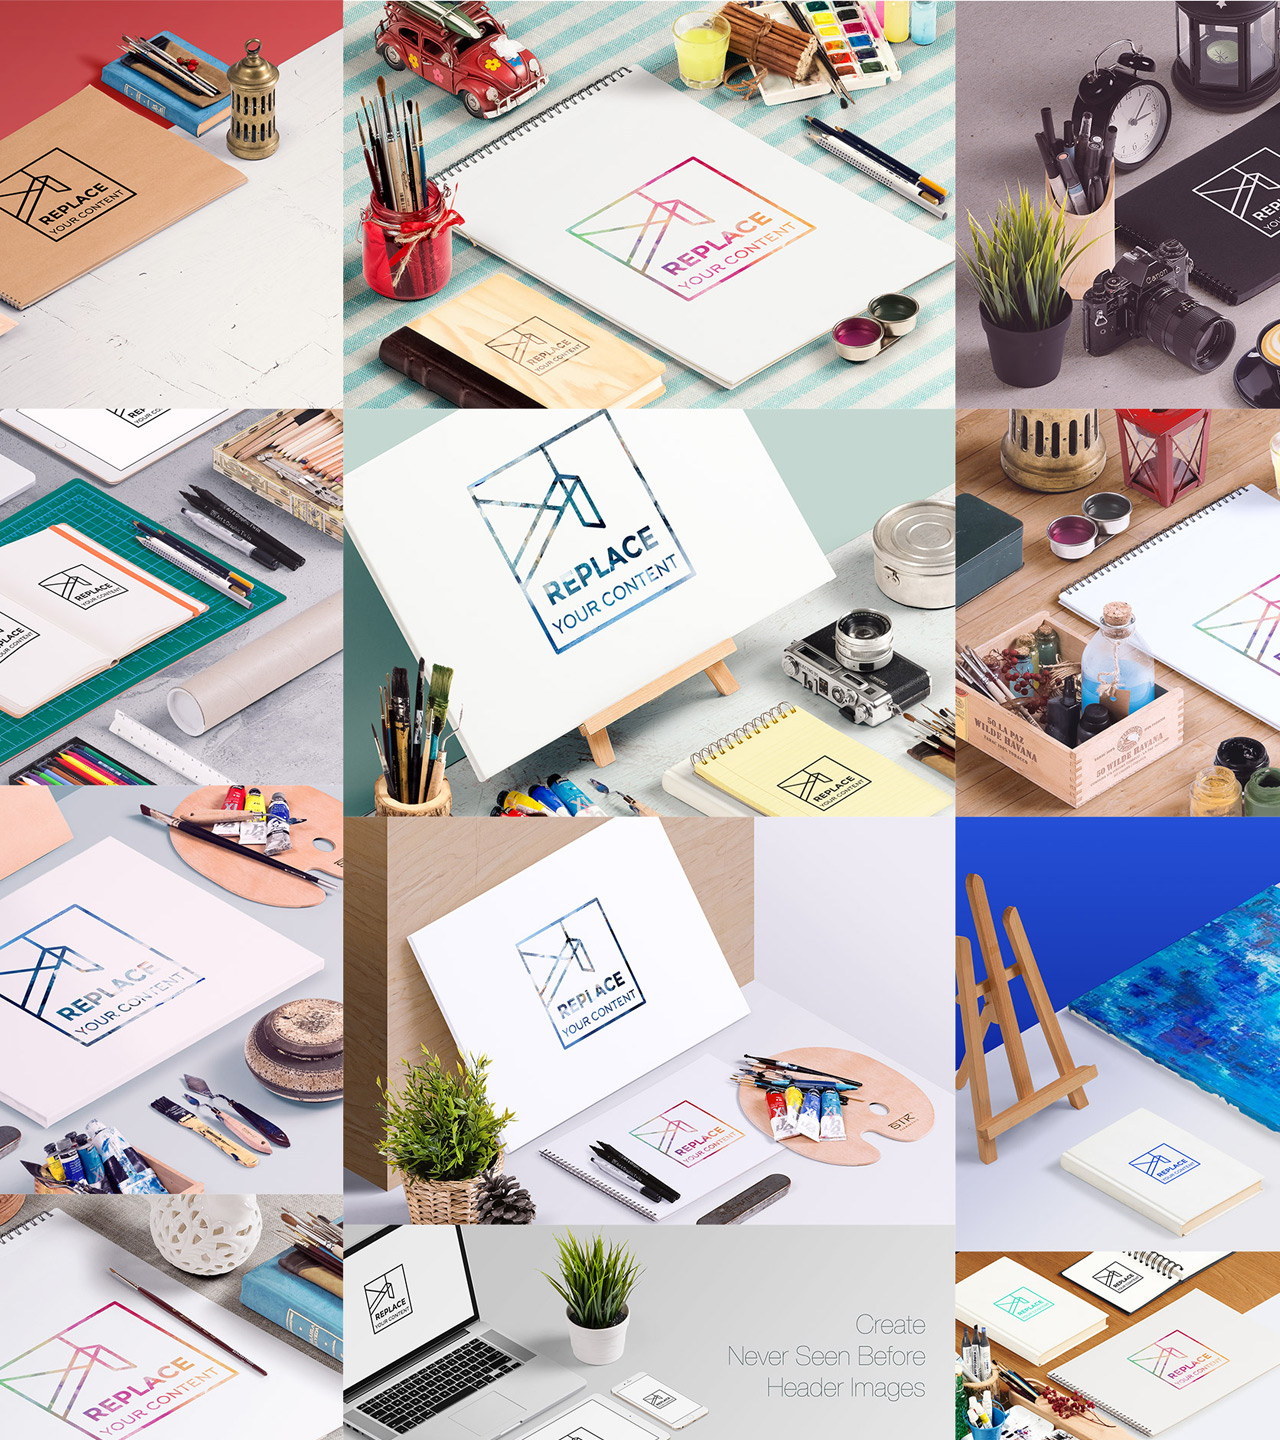 Pre-designed Mockup Scenes - Are you lazy or have no time? Use one of ready made stages and get a quick result. All of them fully layered and includes light setup for a photo realistic image.Full Preview